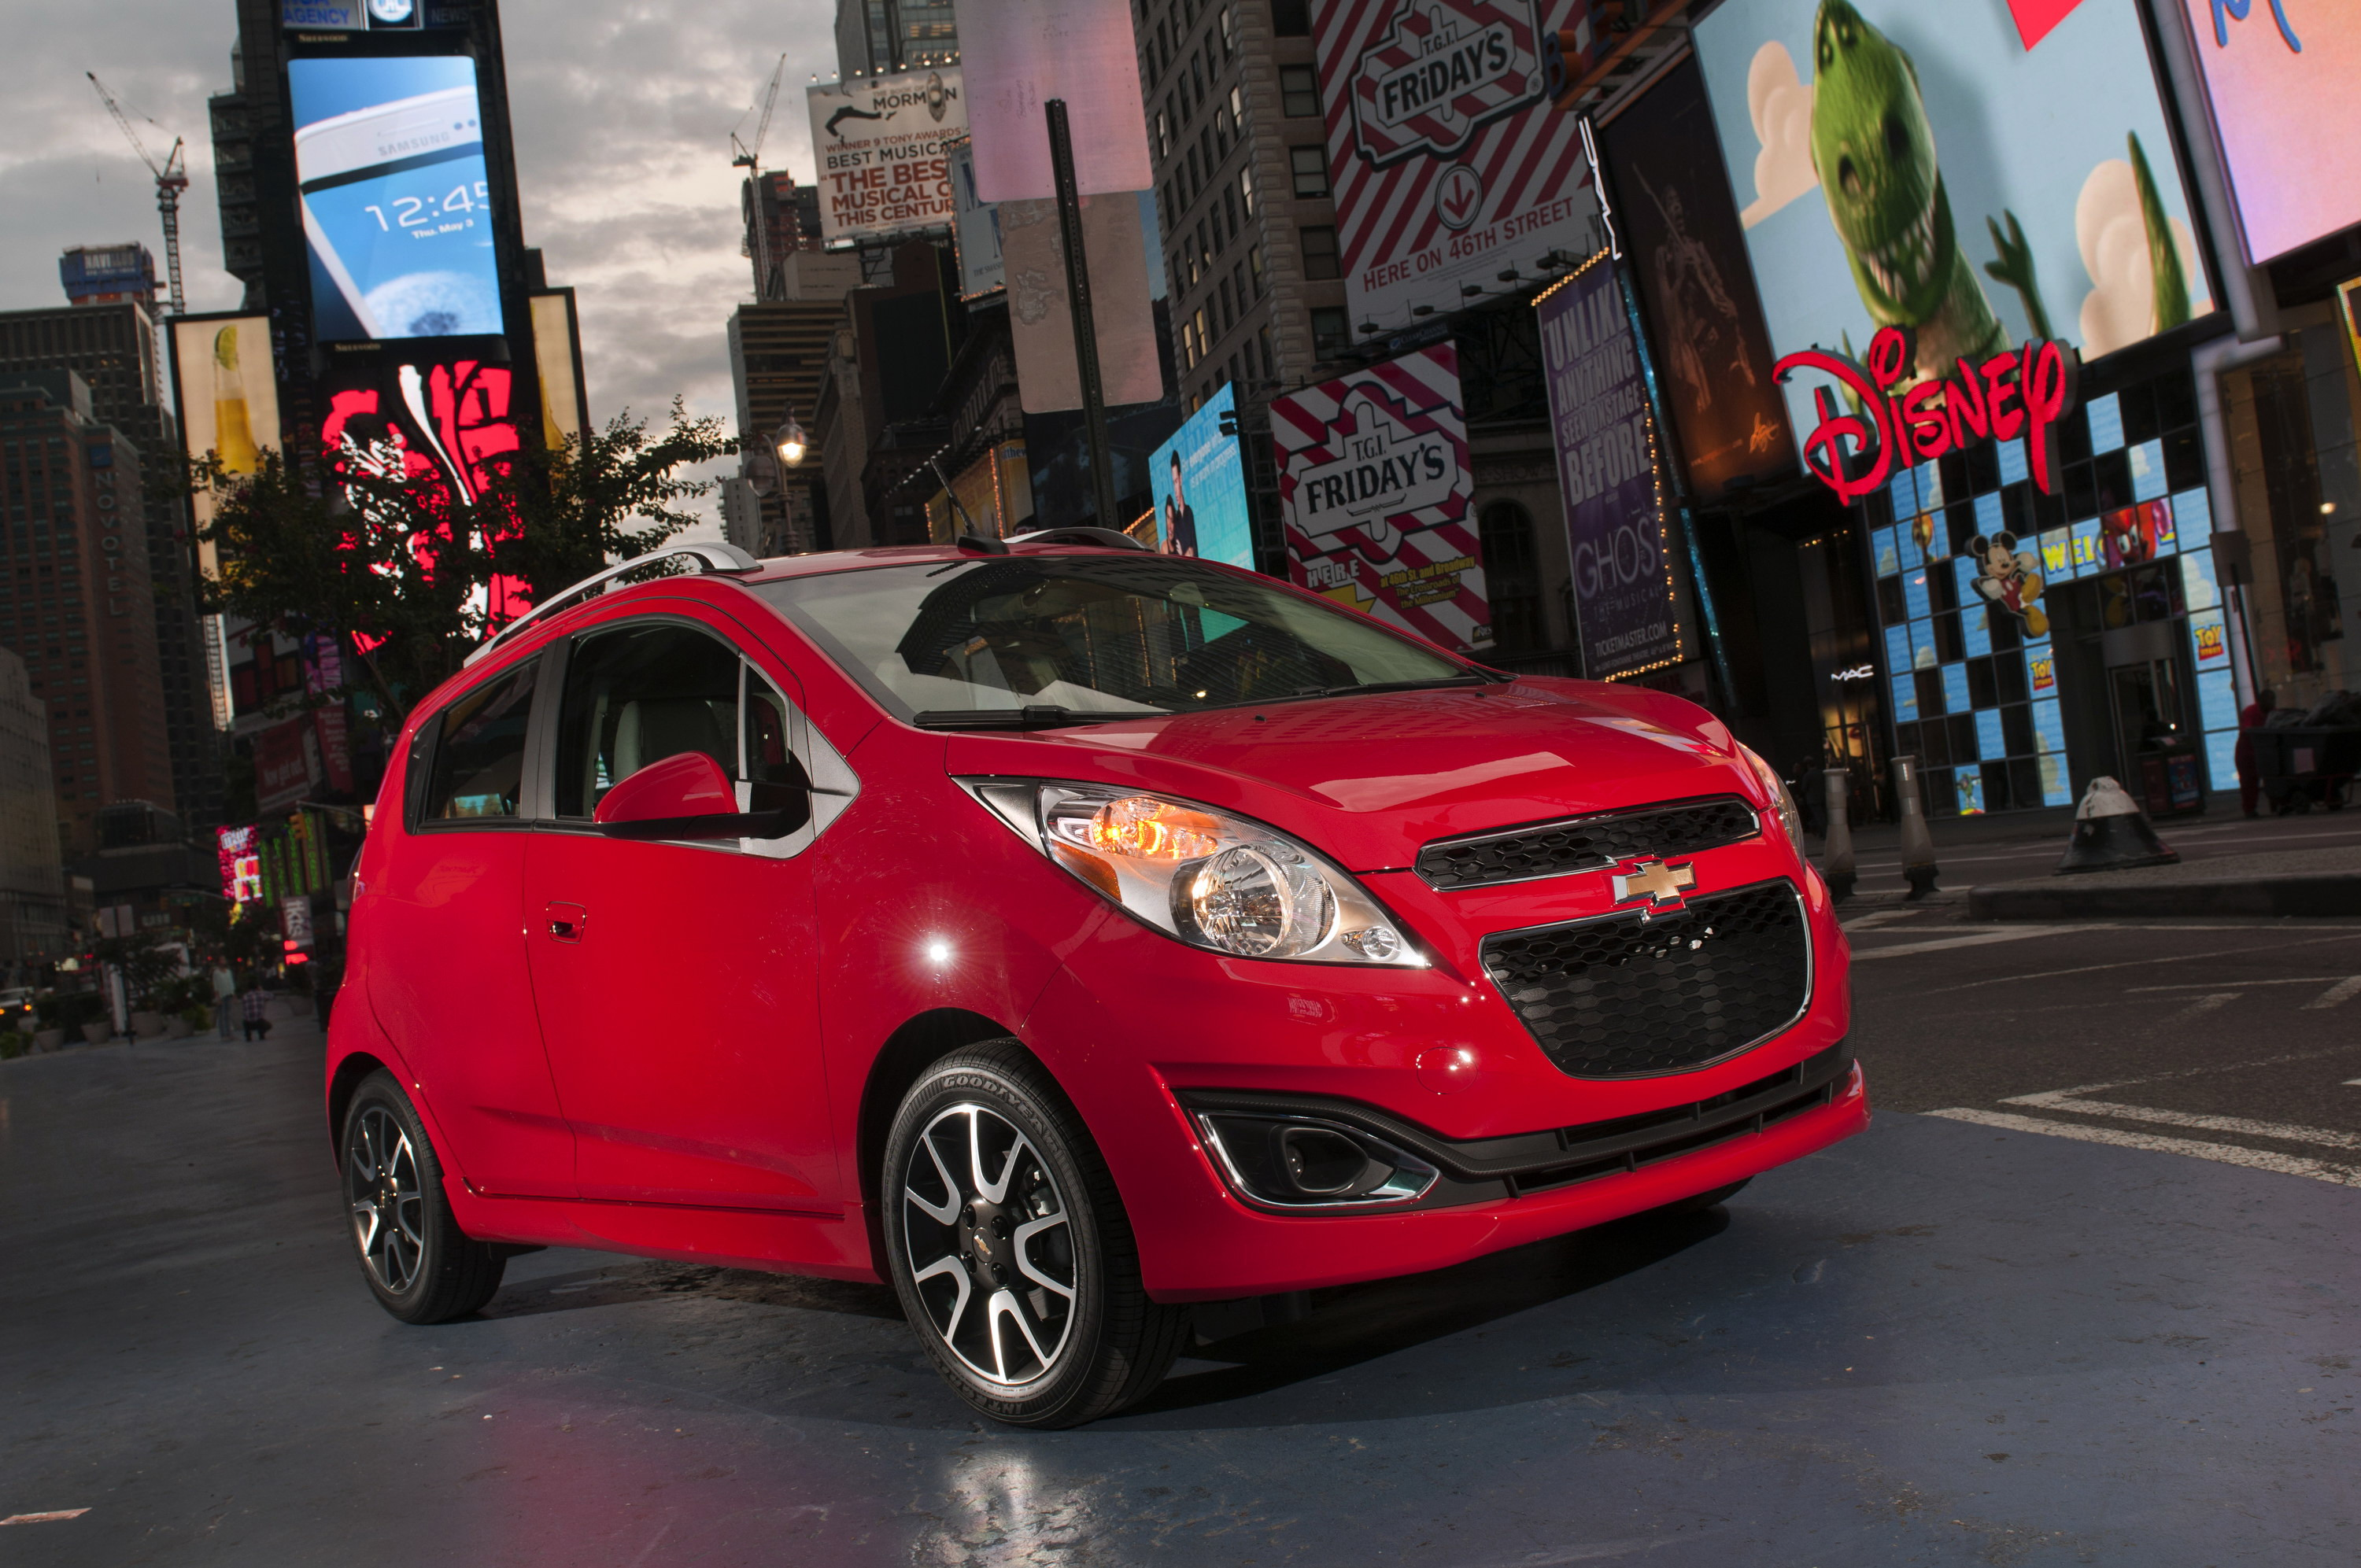 Used Chevy Spark >> 2014 Chevrolet Spark Review - Top Speed